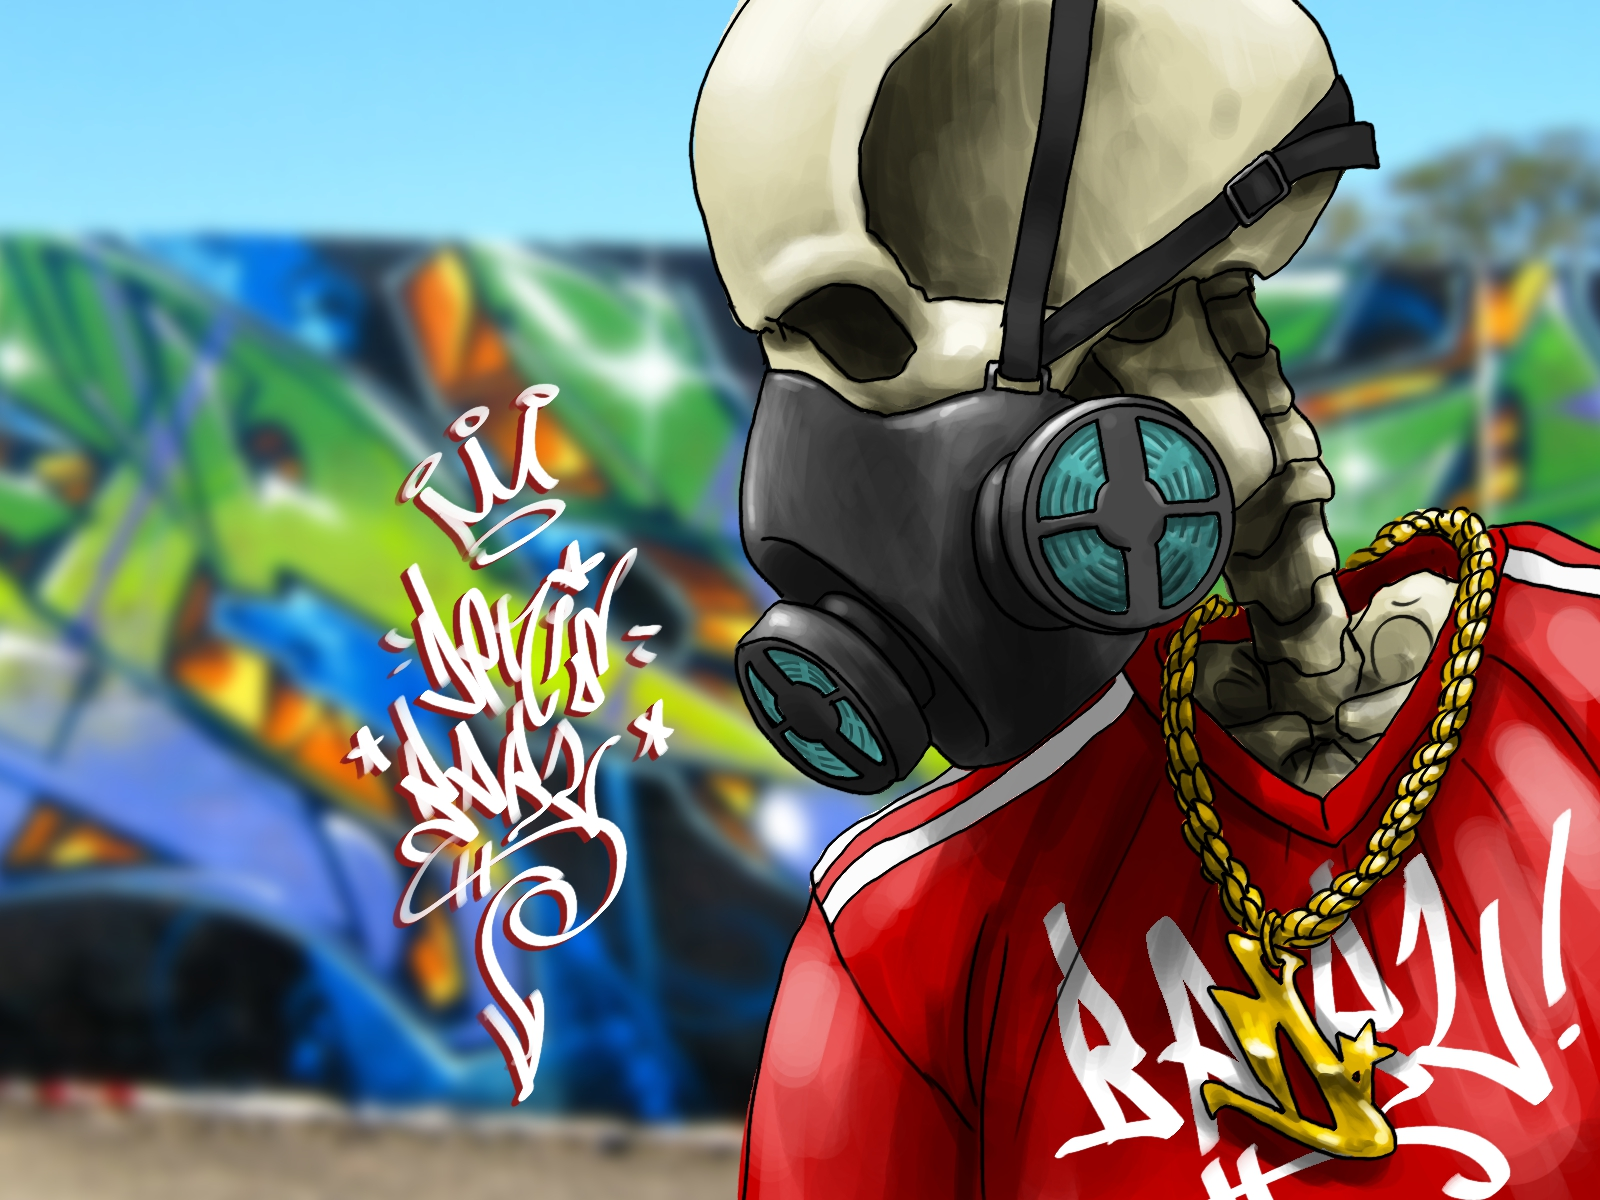 graffiti wallpaper skull hd - photo #11